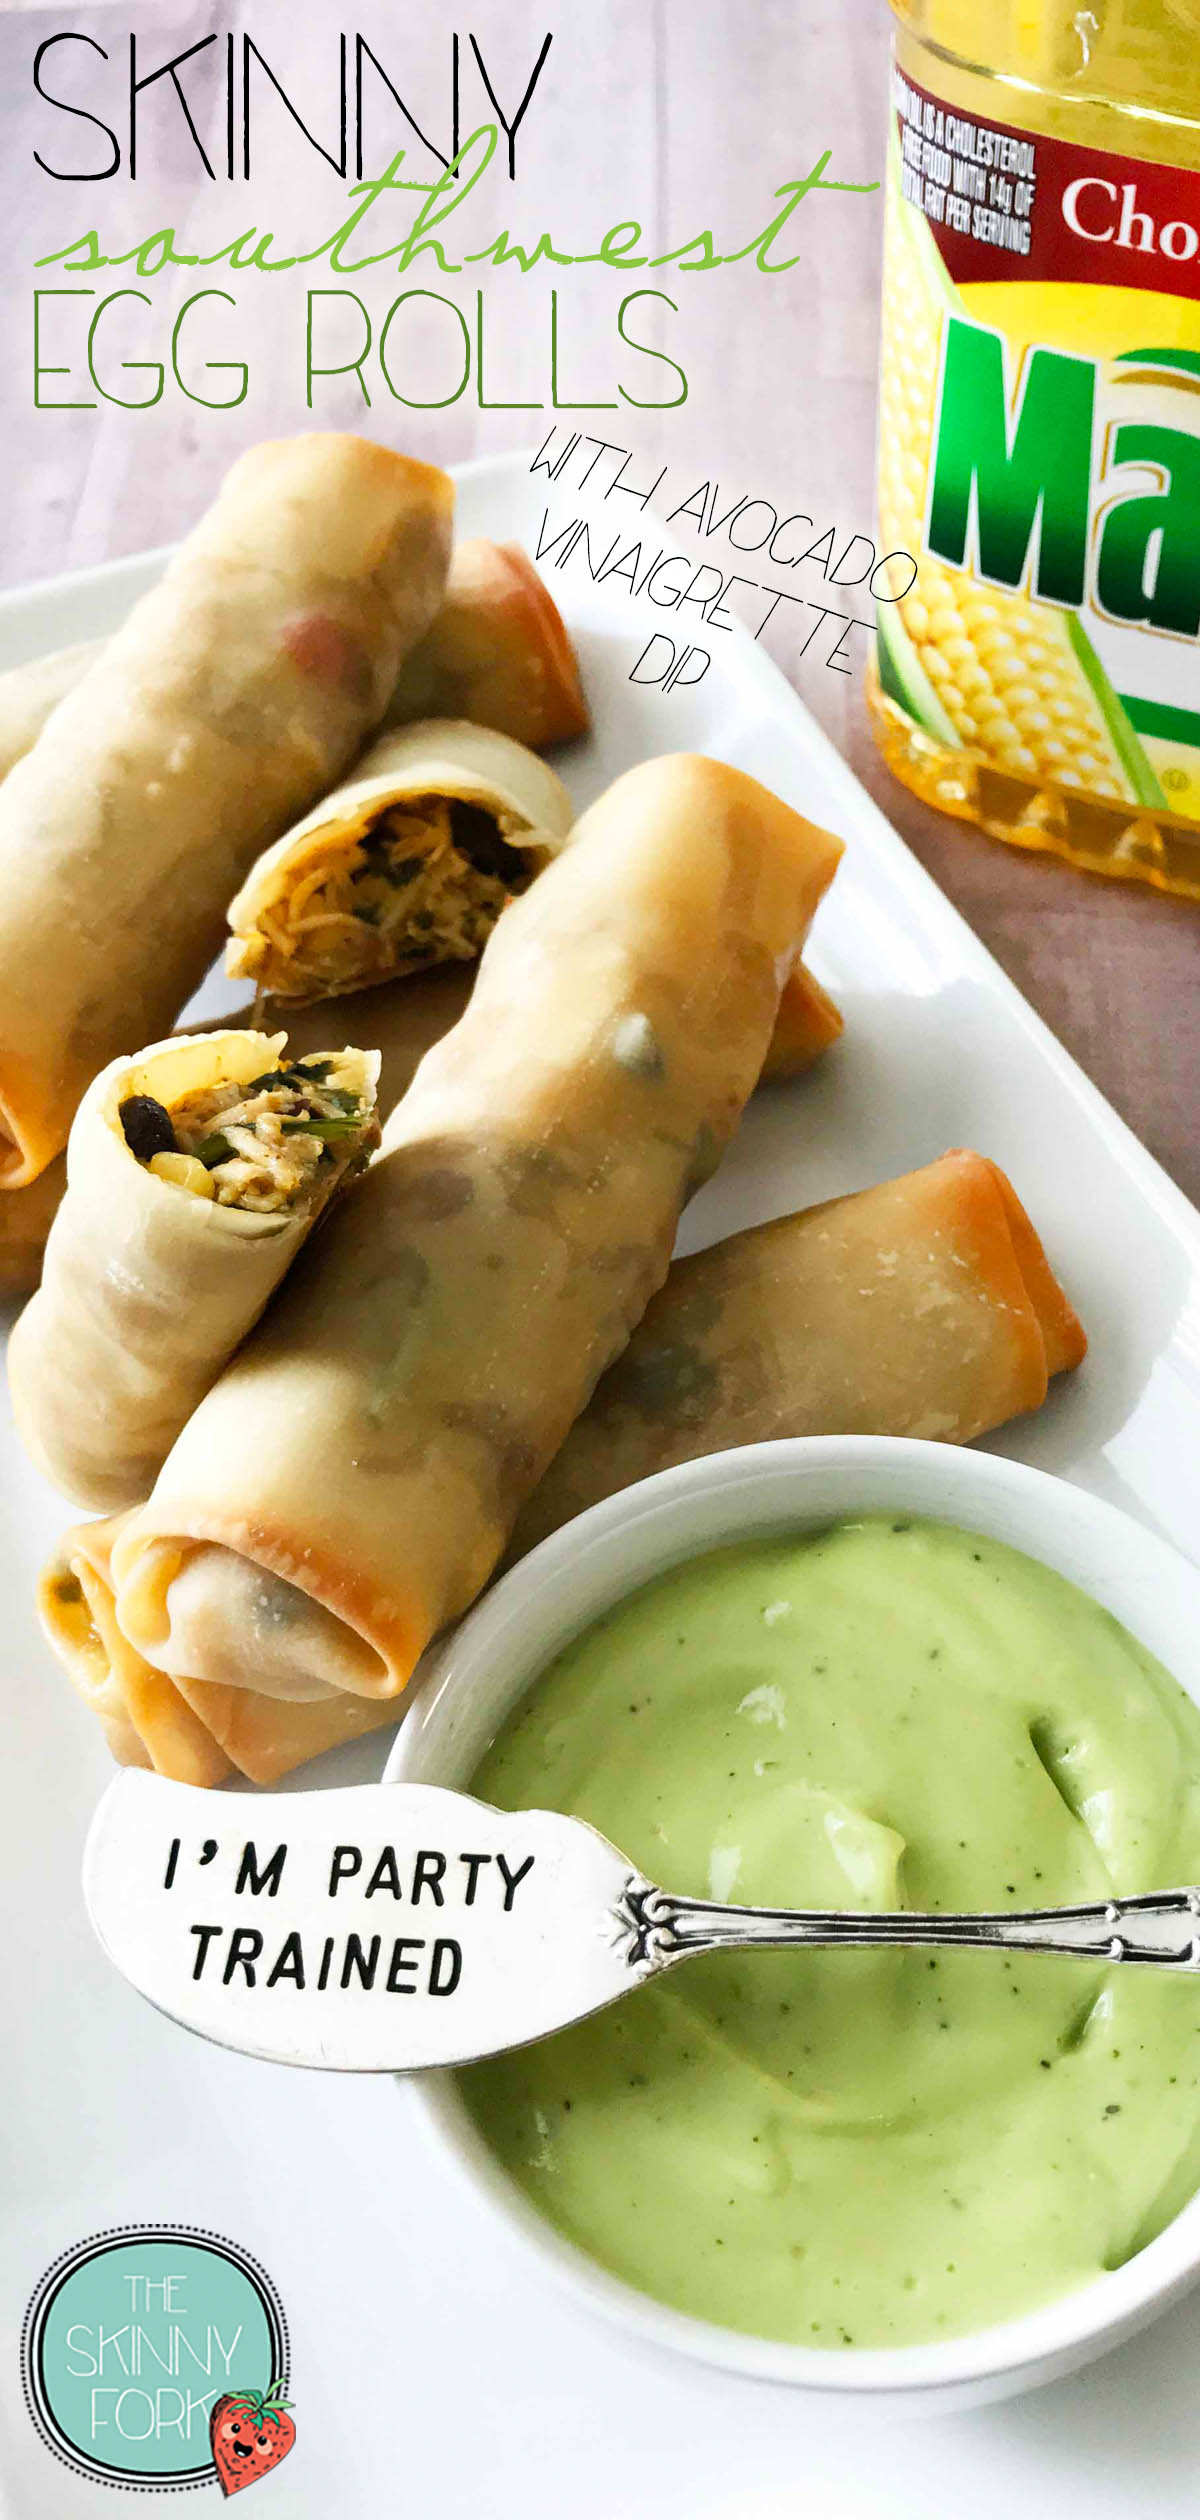 Skinny Southwest Egg Rolls + Avocado Vinaigrette Dip (Sponsored)